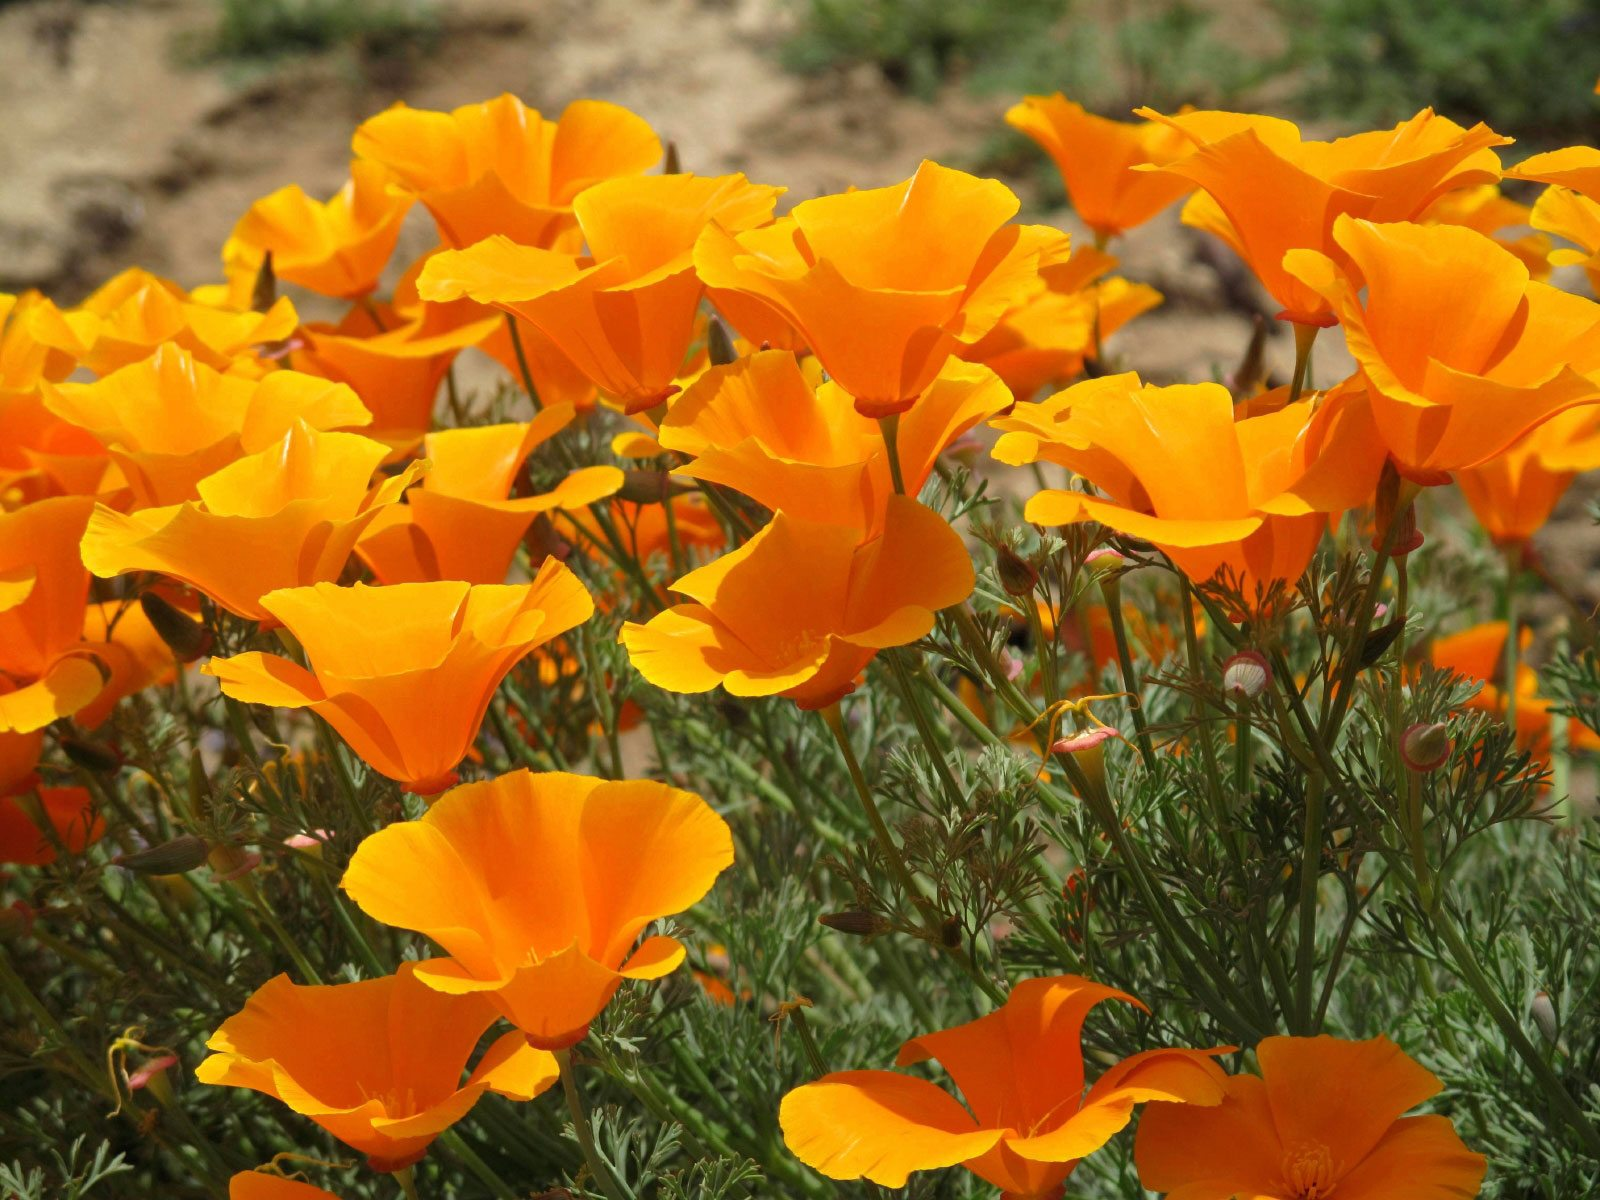 california poppy info learn about growing california poppies. Black Bedroom Furniture Sets. Home Design Ideas